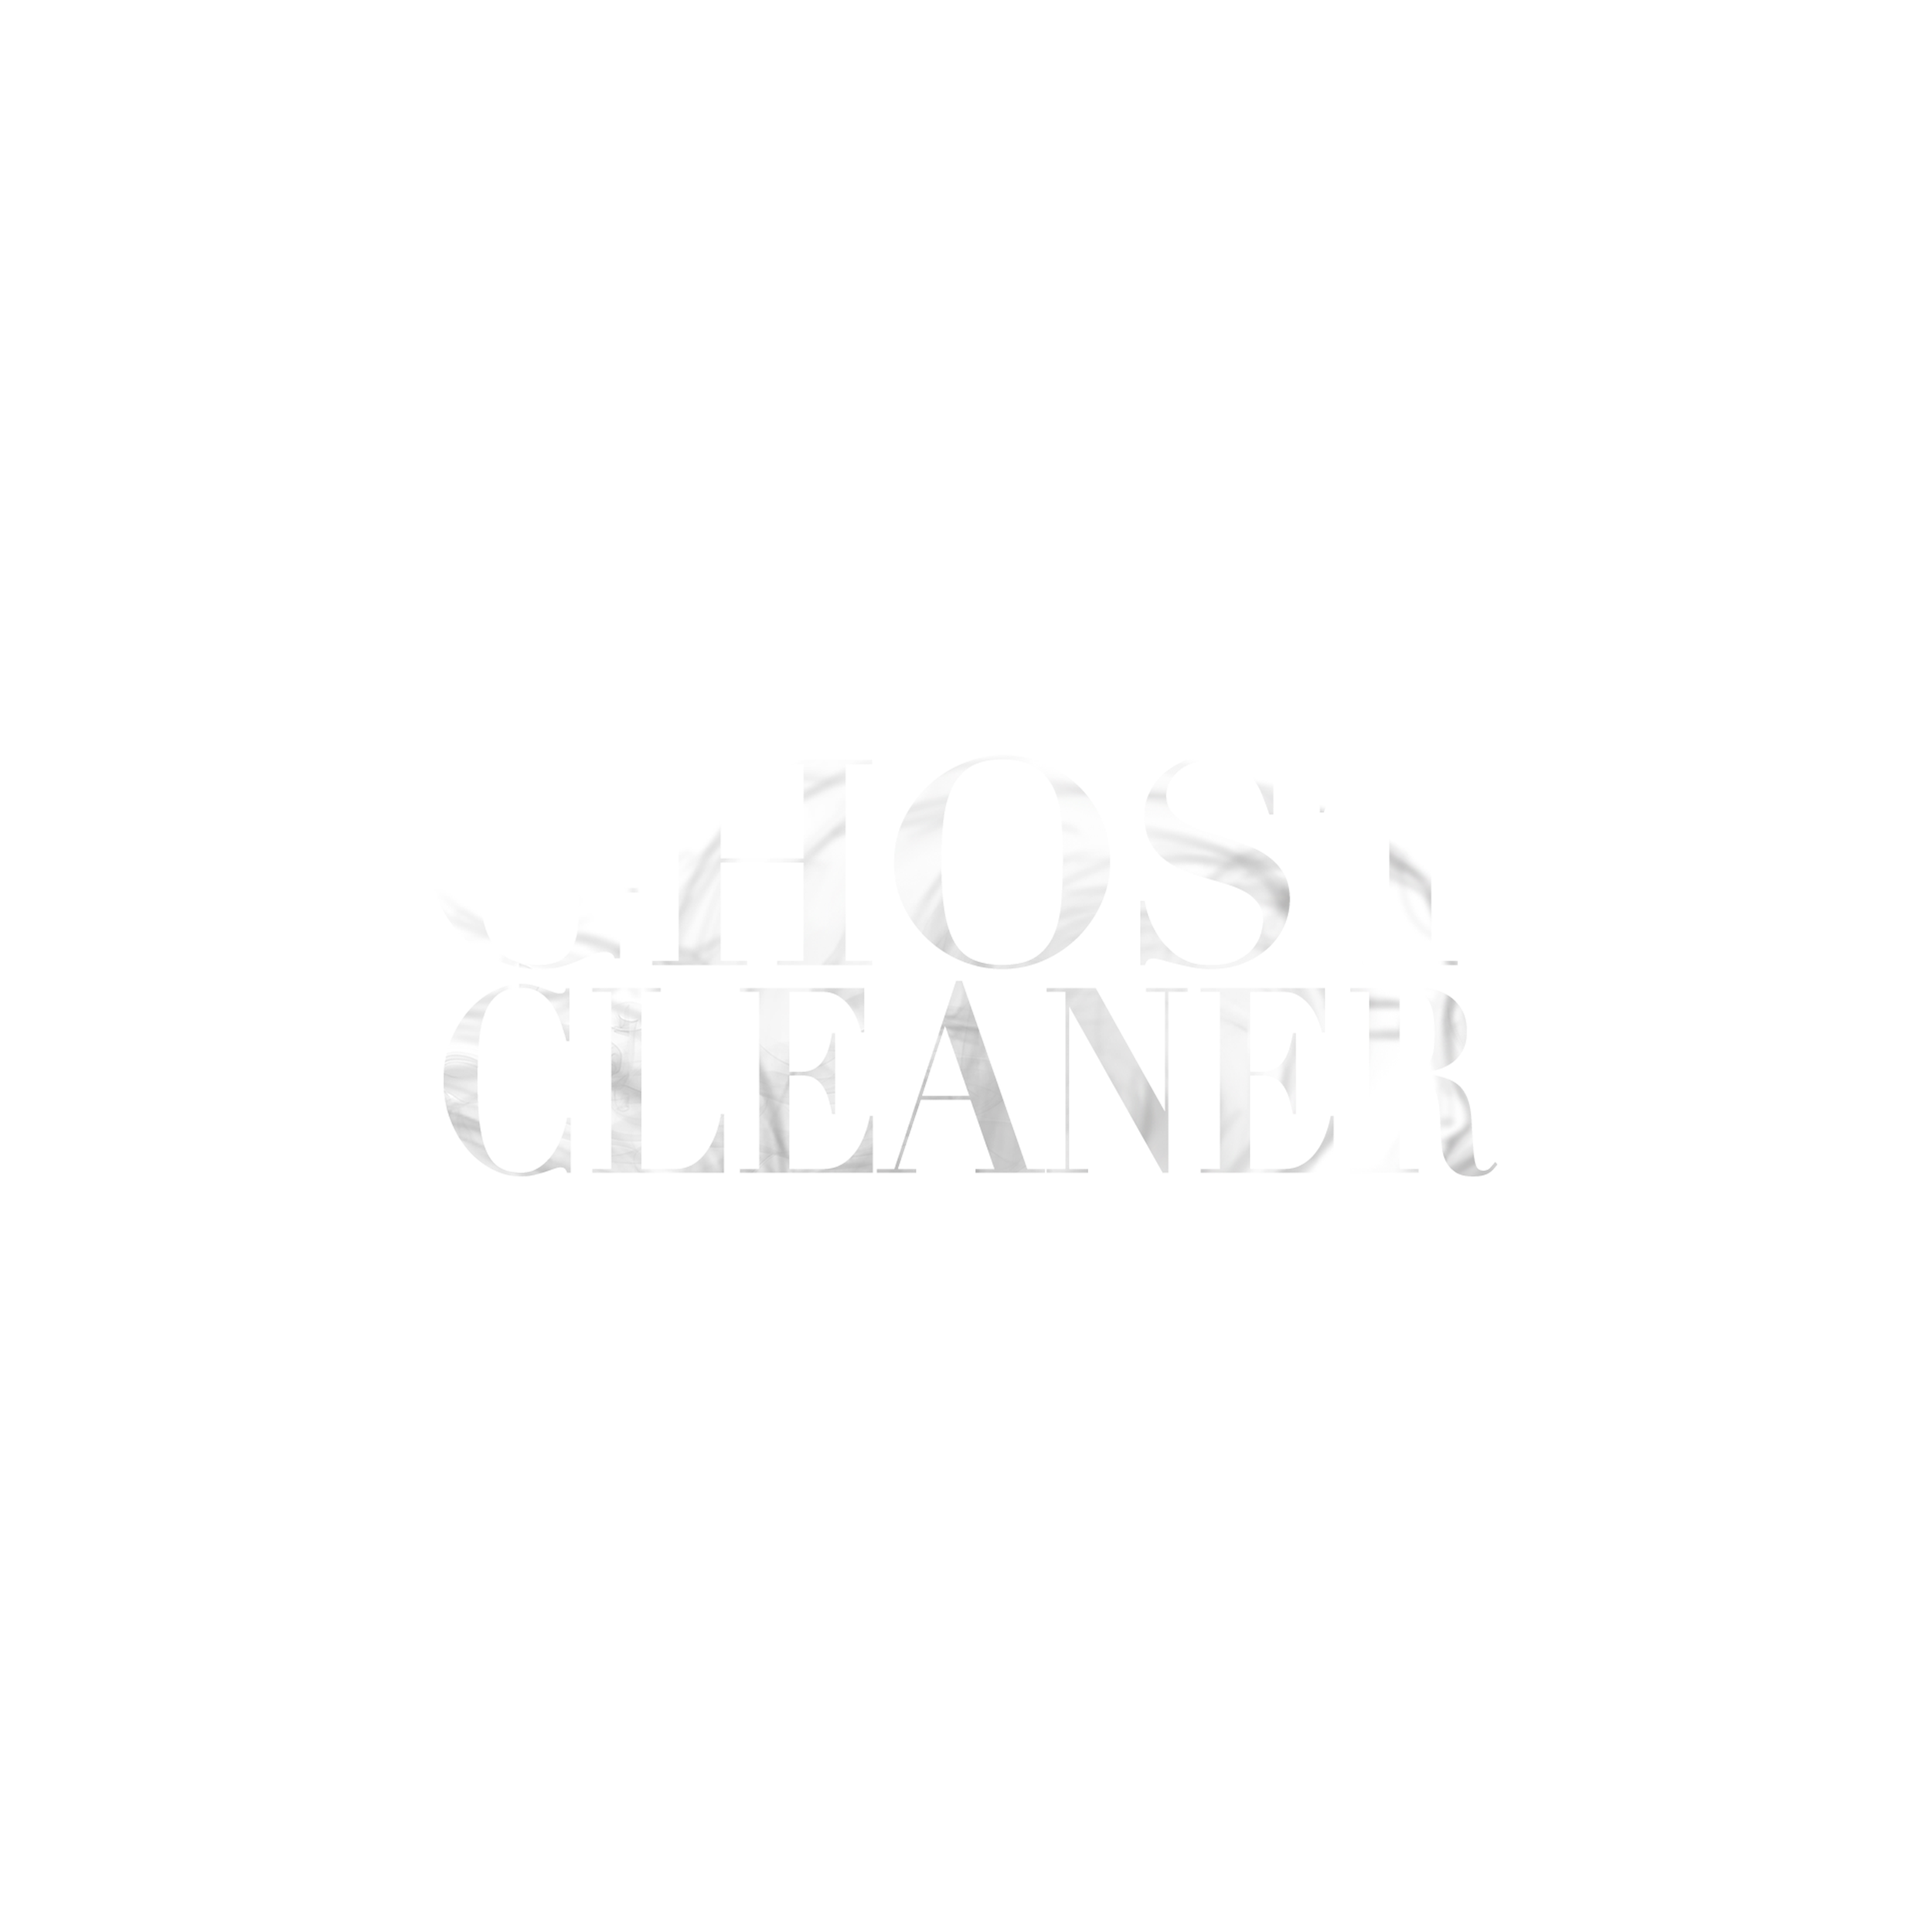 Ghost Cleaner logo